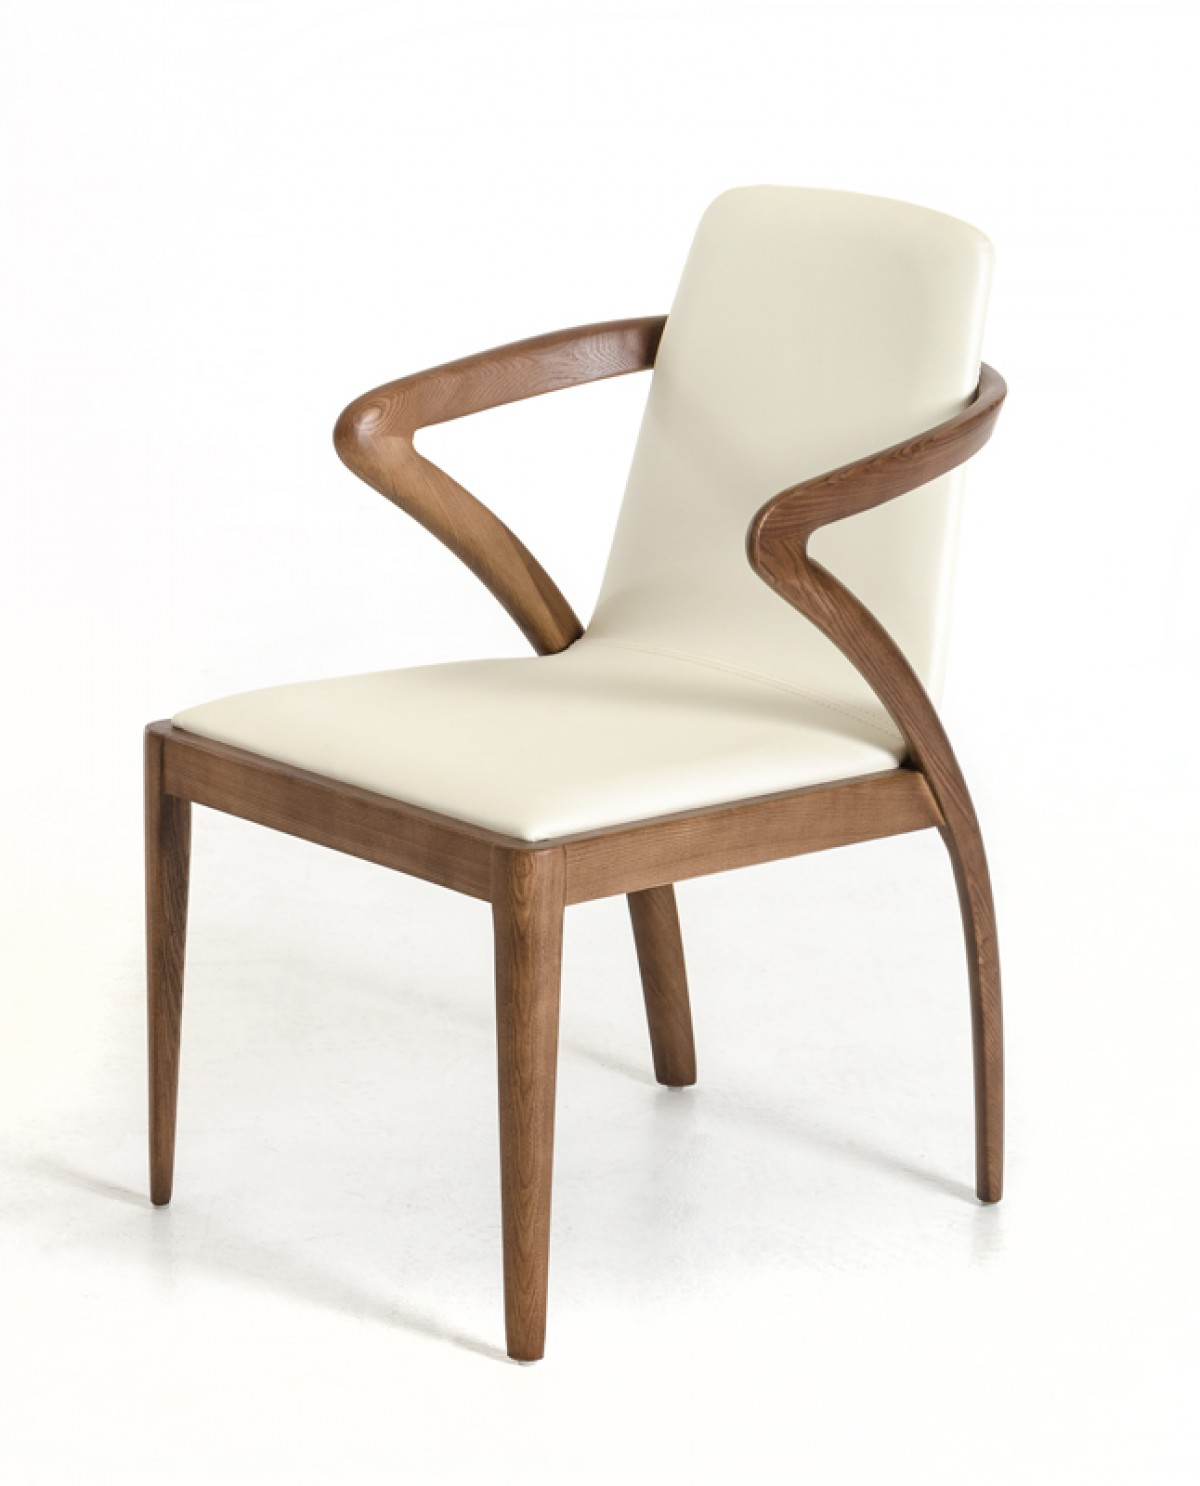 Modrest falcon modern walnut and cream dining chair for Contemporary designer dining chairs